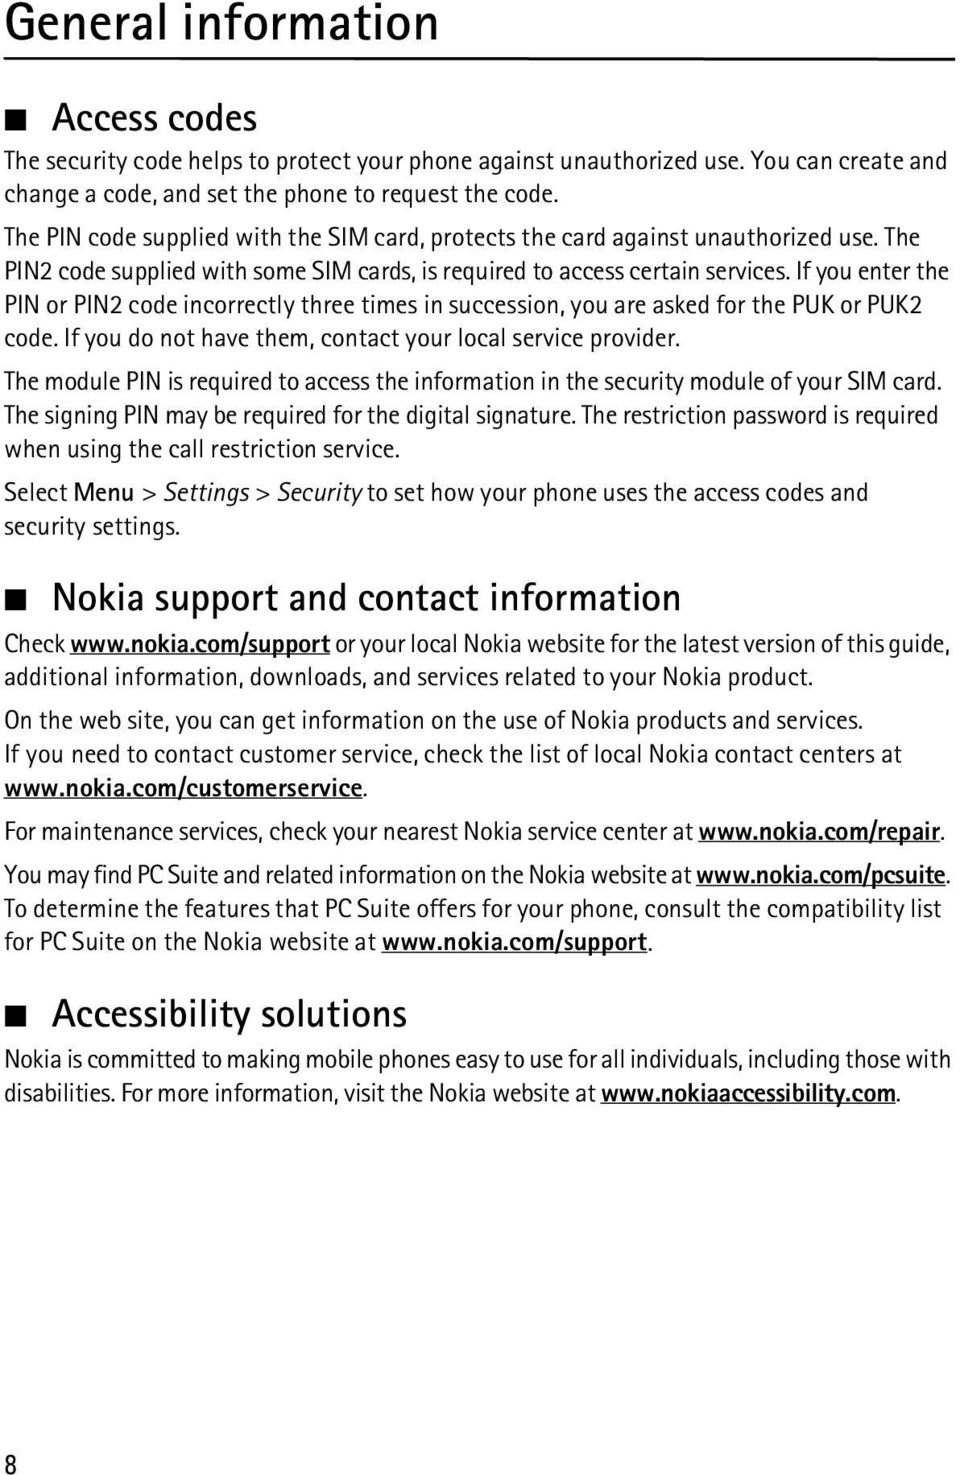 If you enter the PIN or PIN2 code incorrectly three times in succession, you are asked for the PUK or PUK2 code. If you do not have them, contact your local service provider.